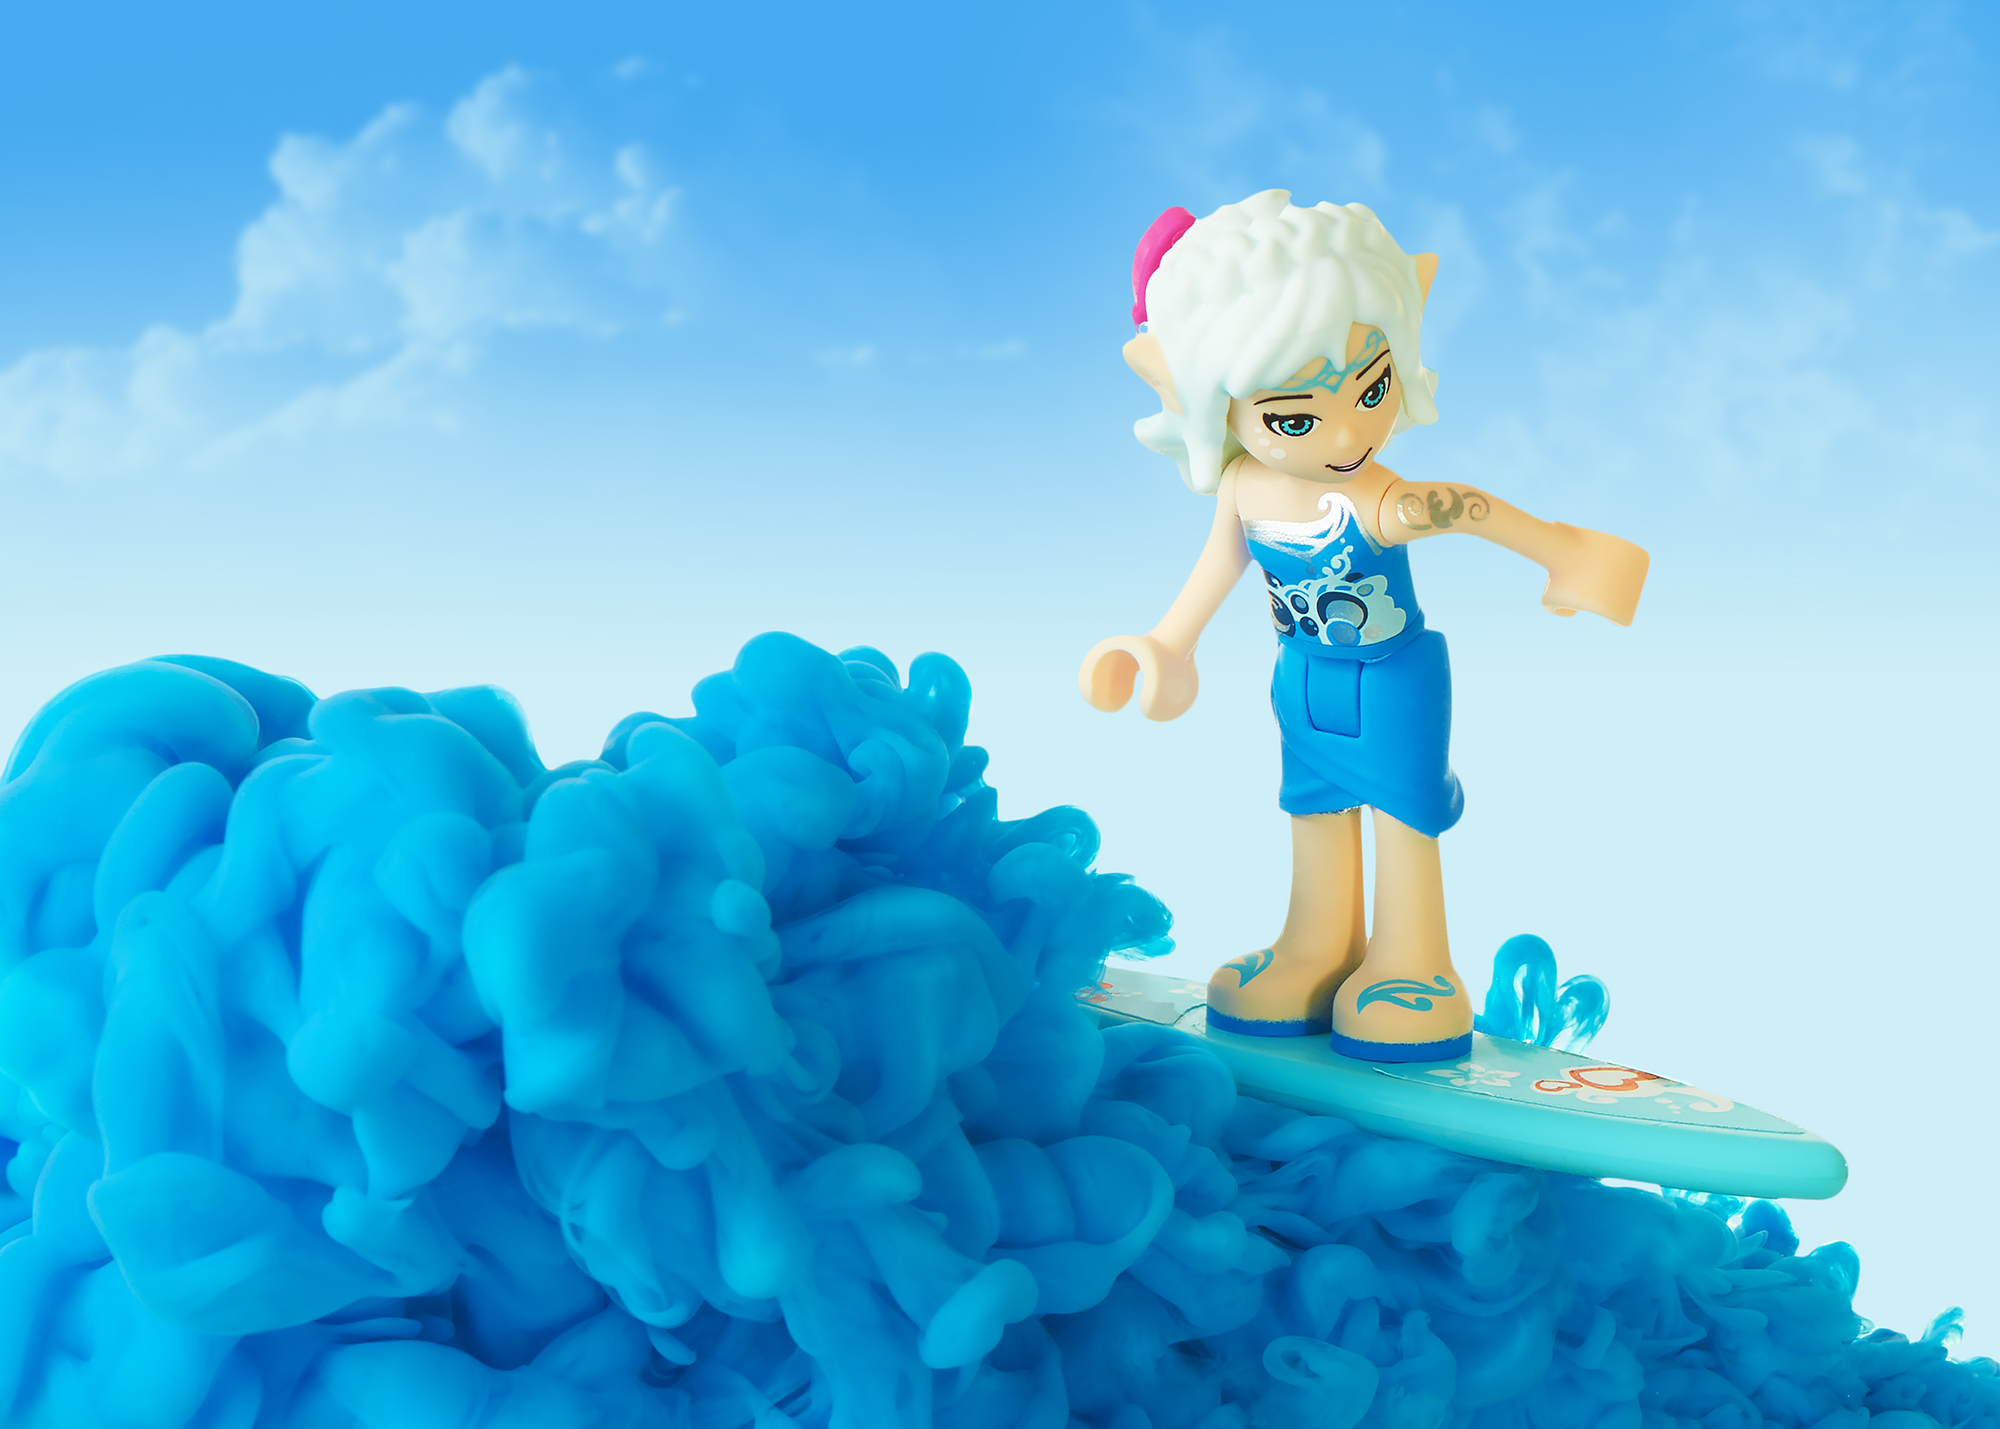 Ian Knaggs Commercial Still Life Photographer - Lego Surfer